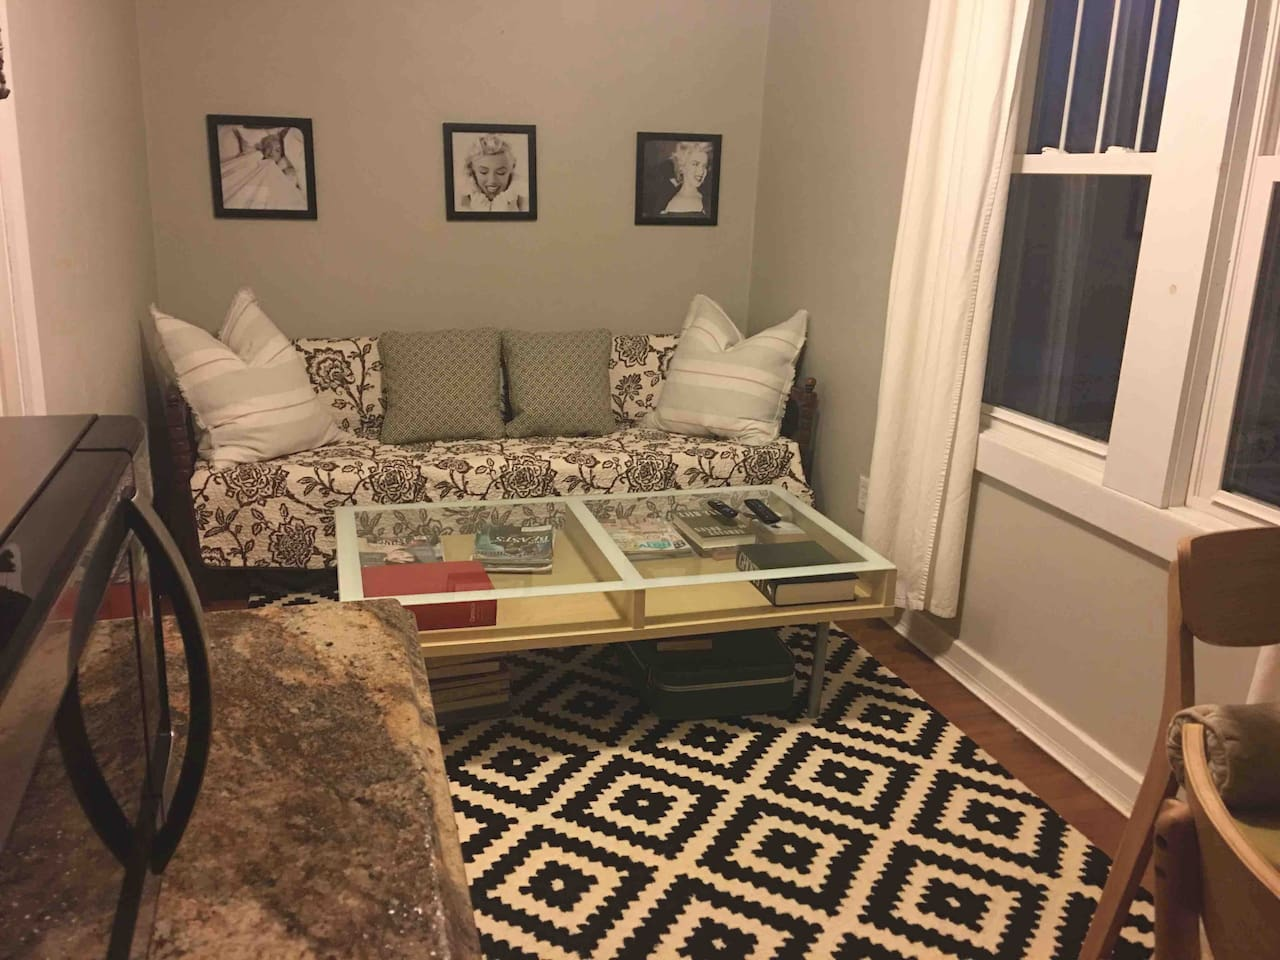 Super cozy little room with everything you need to relax. Daybed sofa, pub table and small kitchenette with a coffeepot, microwave and mini fridge. Has a warm eclectic feel.